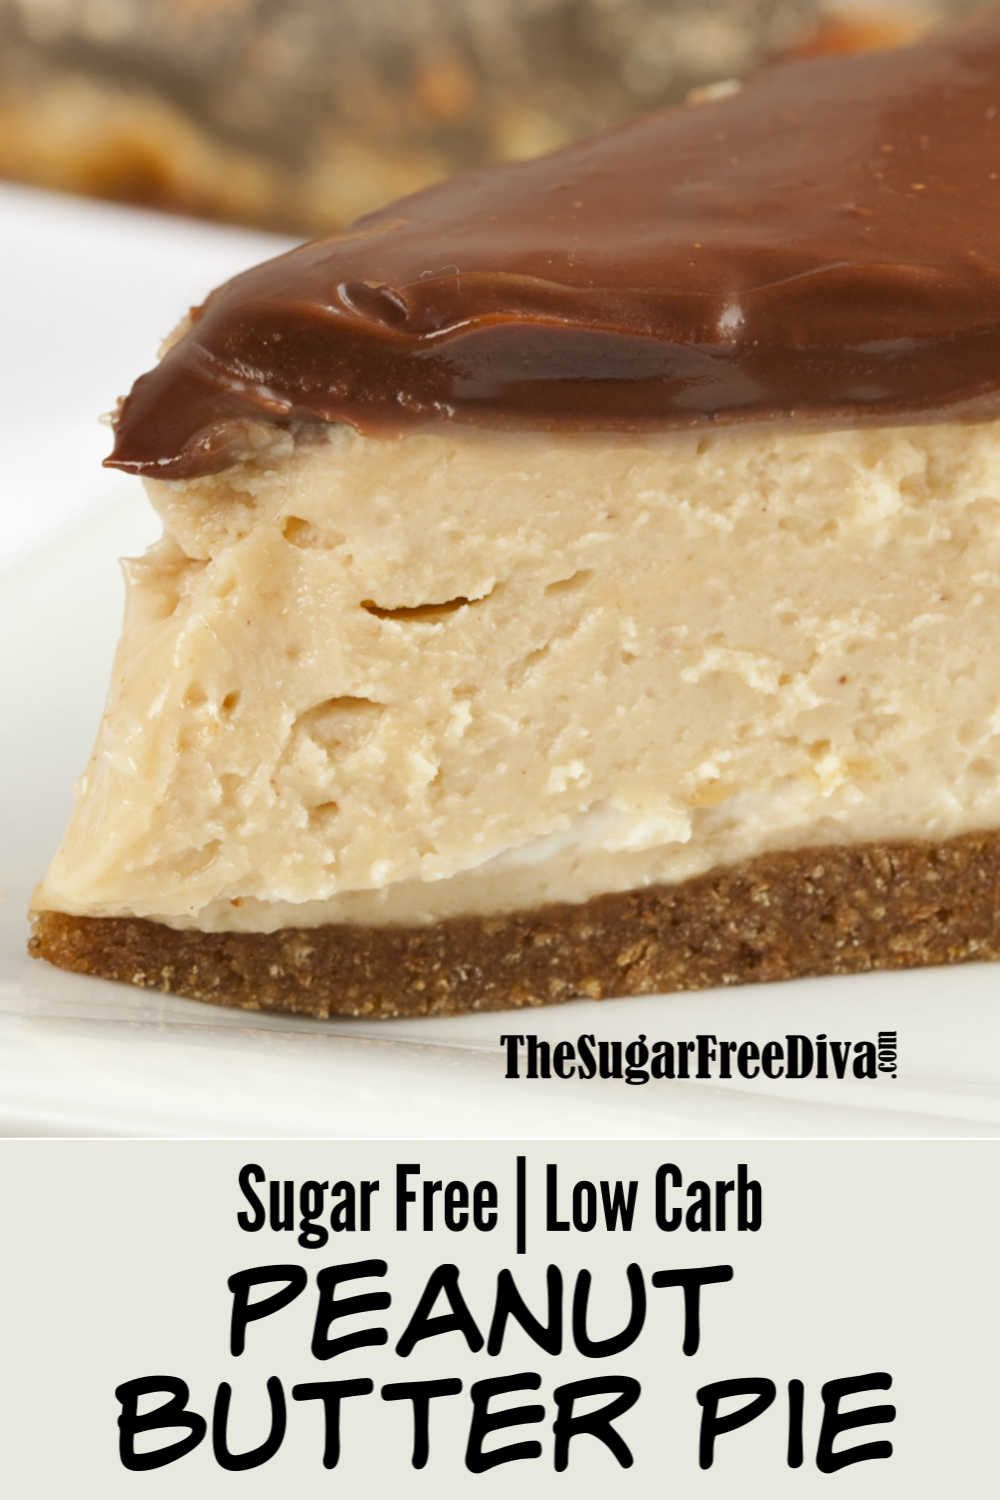 Sugar Free Peanut Butter Pie - THE SUGAR FREE DIVA